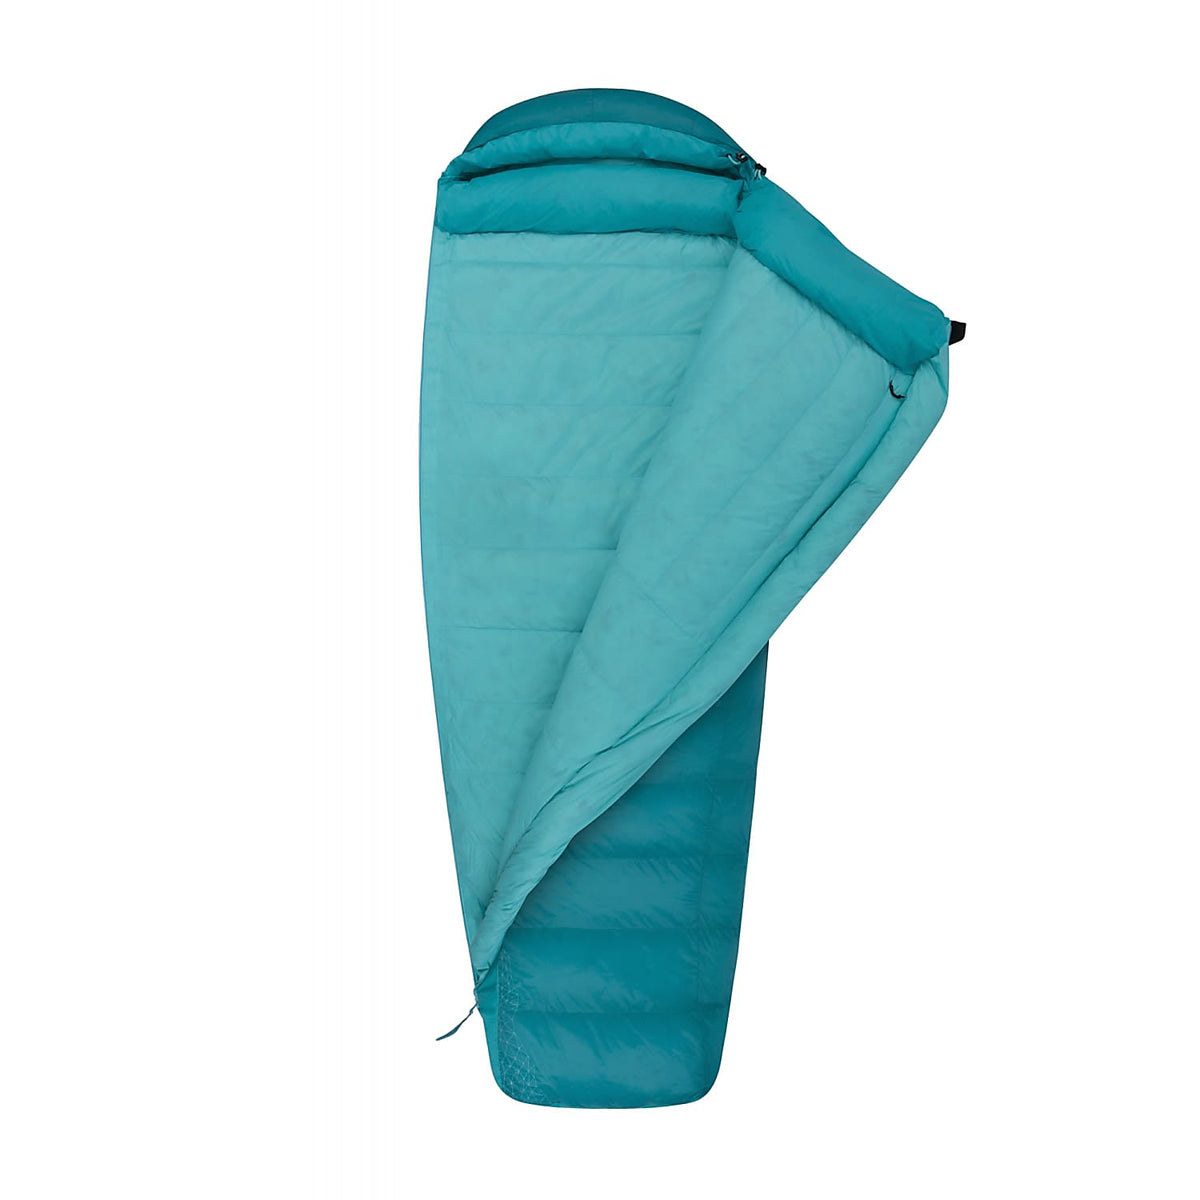 Sea to Summit Altitude II Women's sleeping bag shown 3/4 open with light blue lining